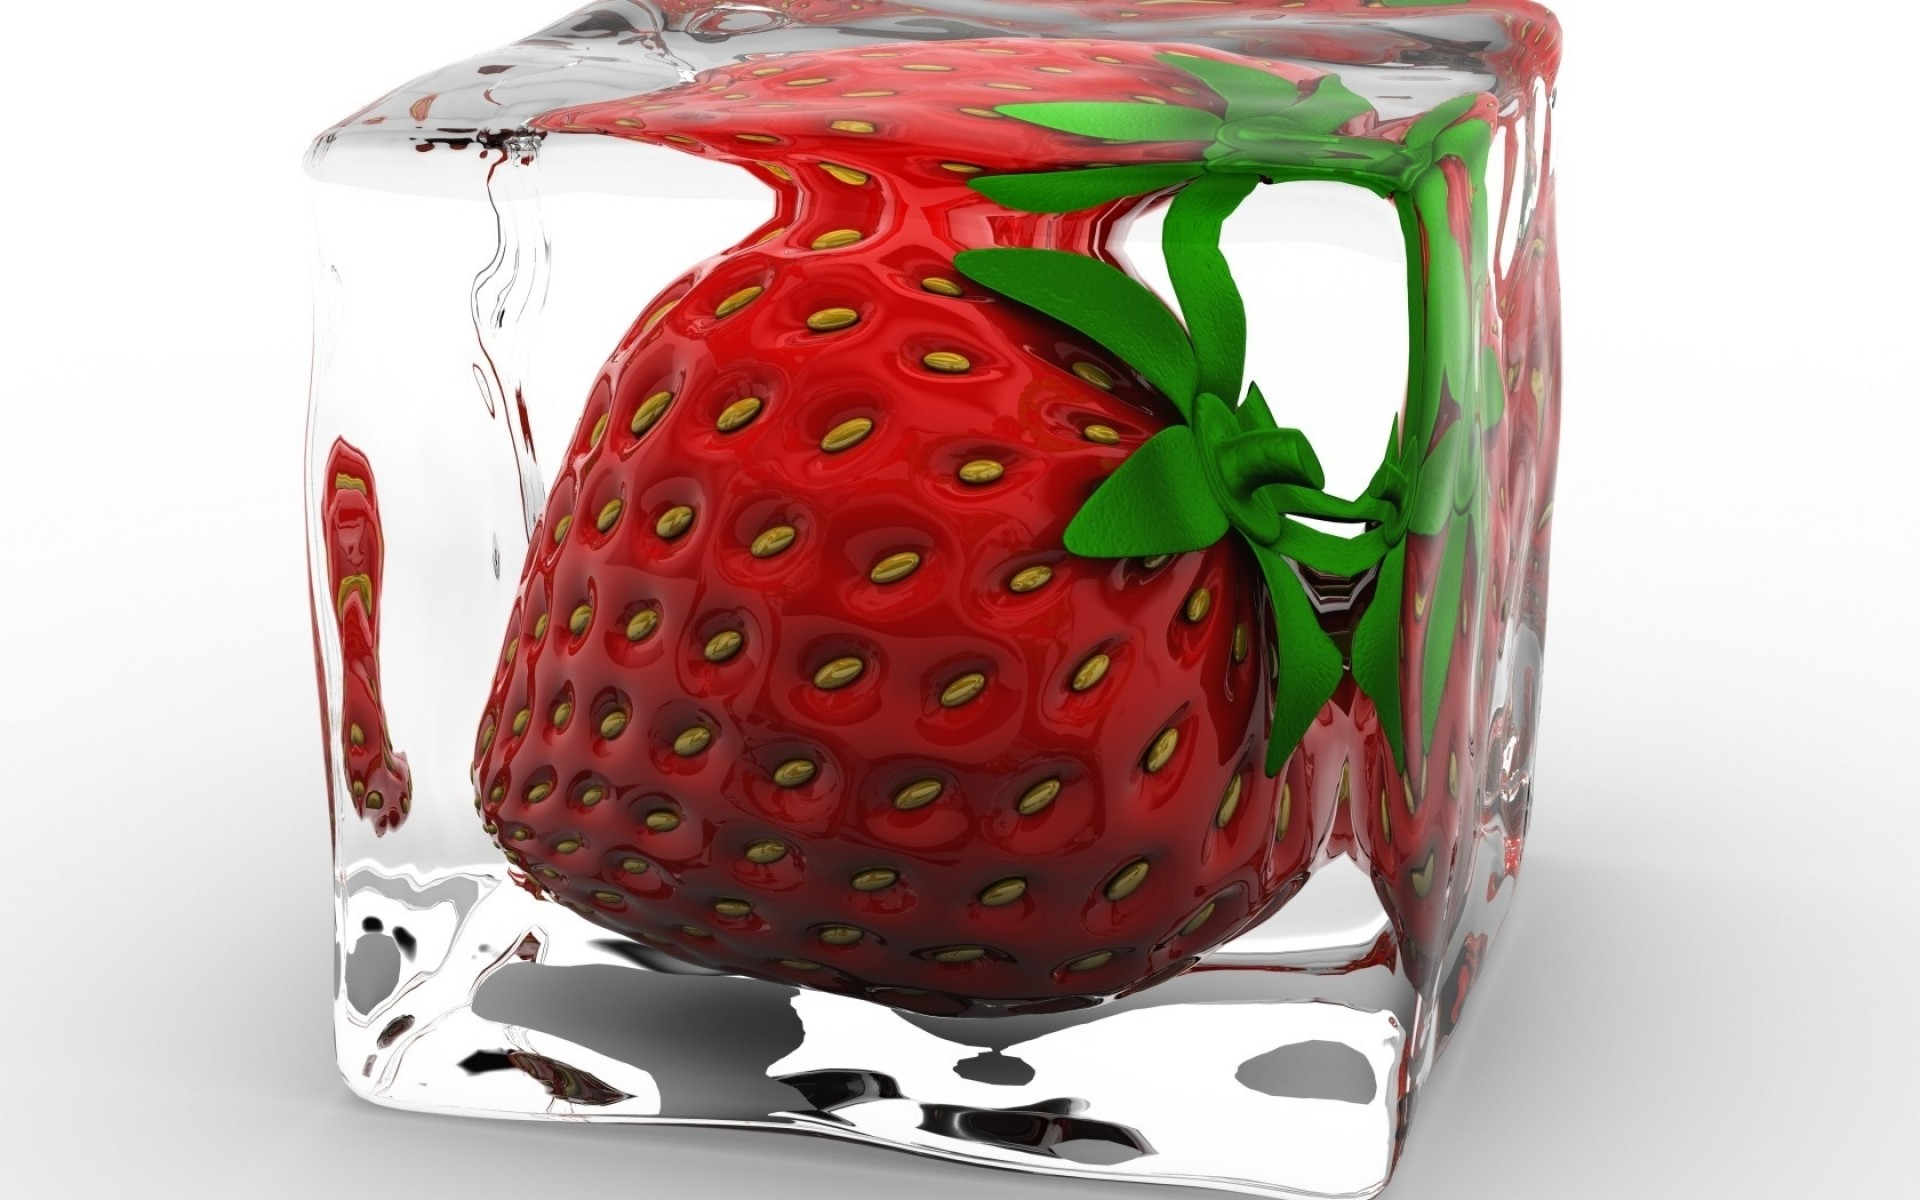 Strawberry Ice Cube wallpapers and stock photos